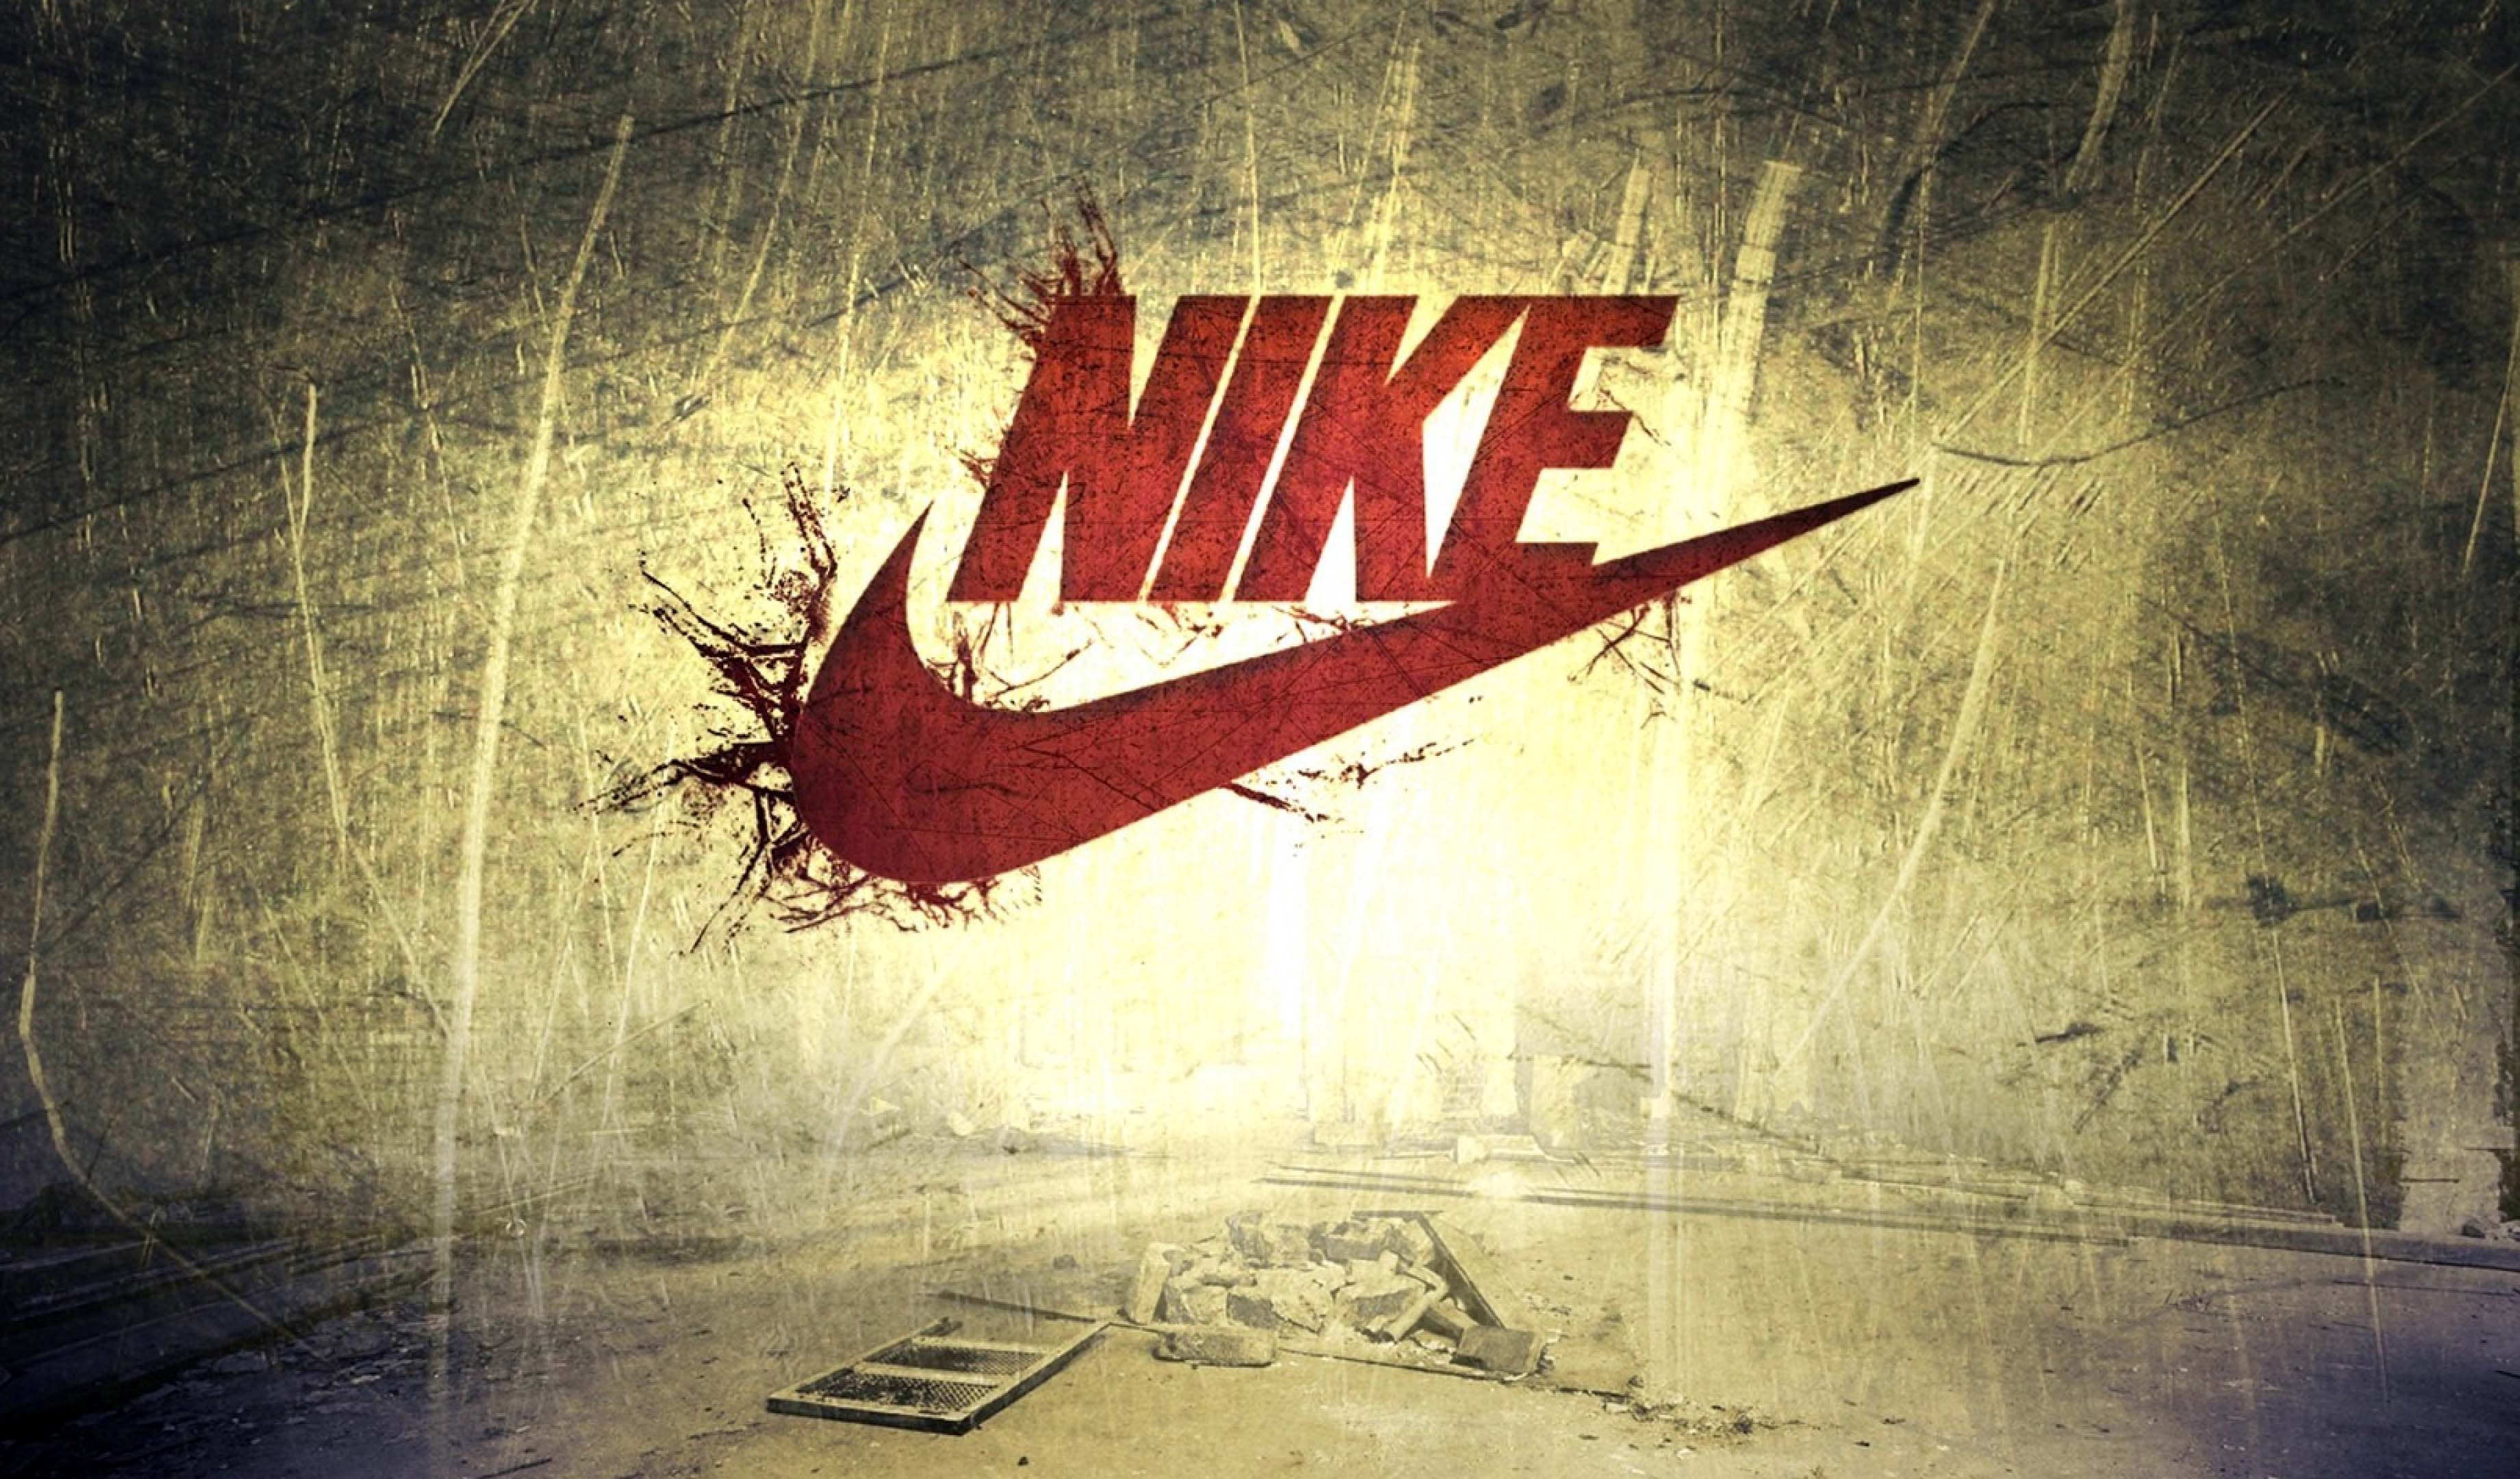 nike just do it hd wallpapers - wallpaper cave